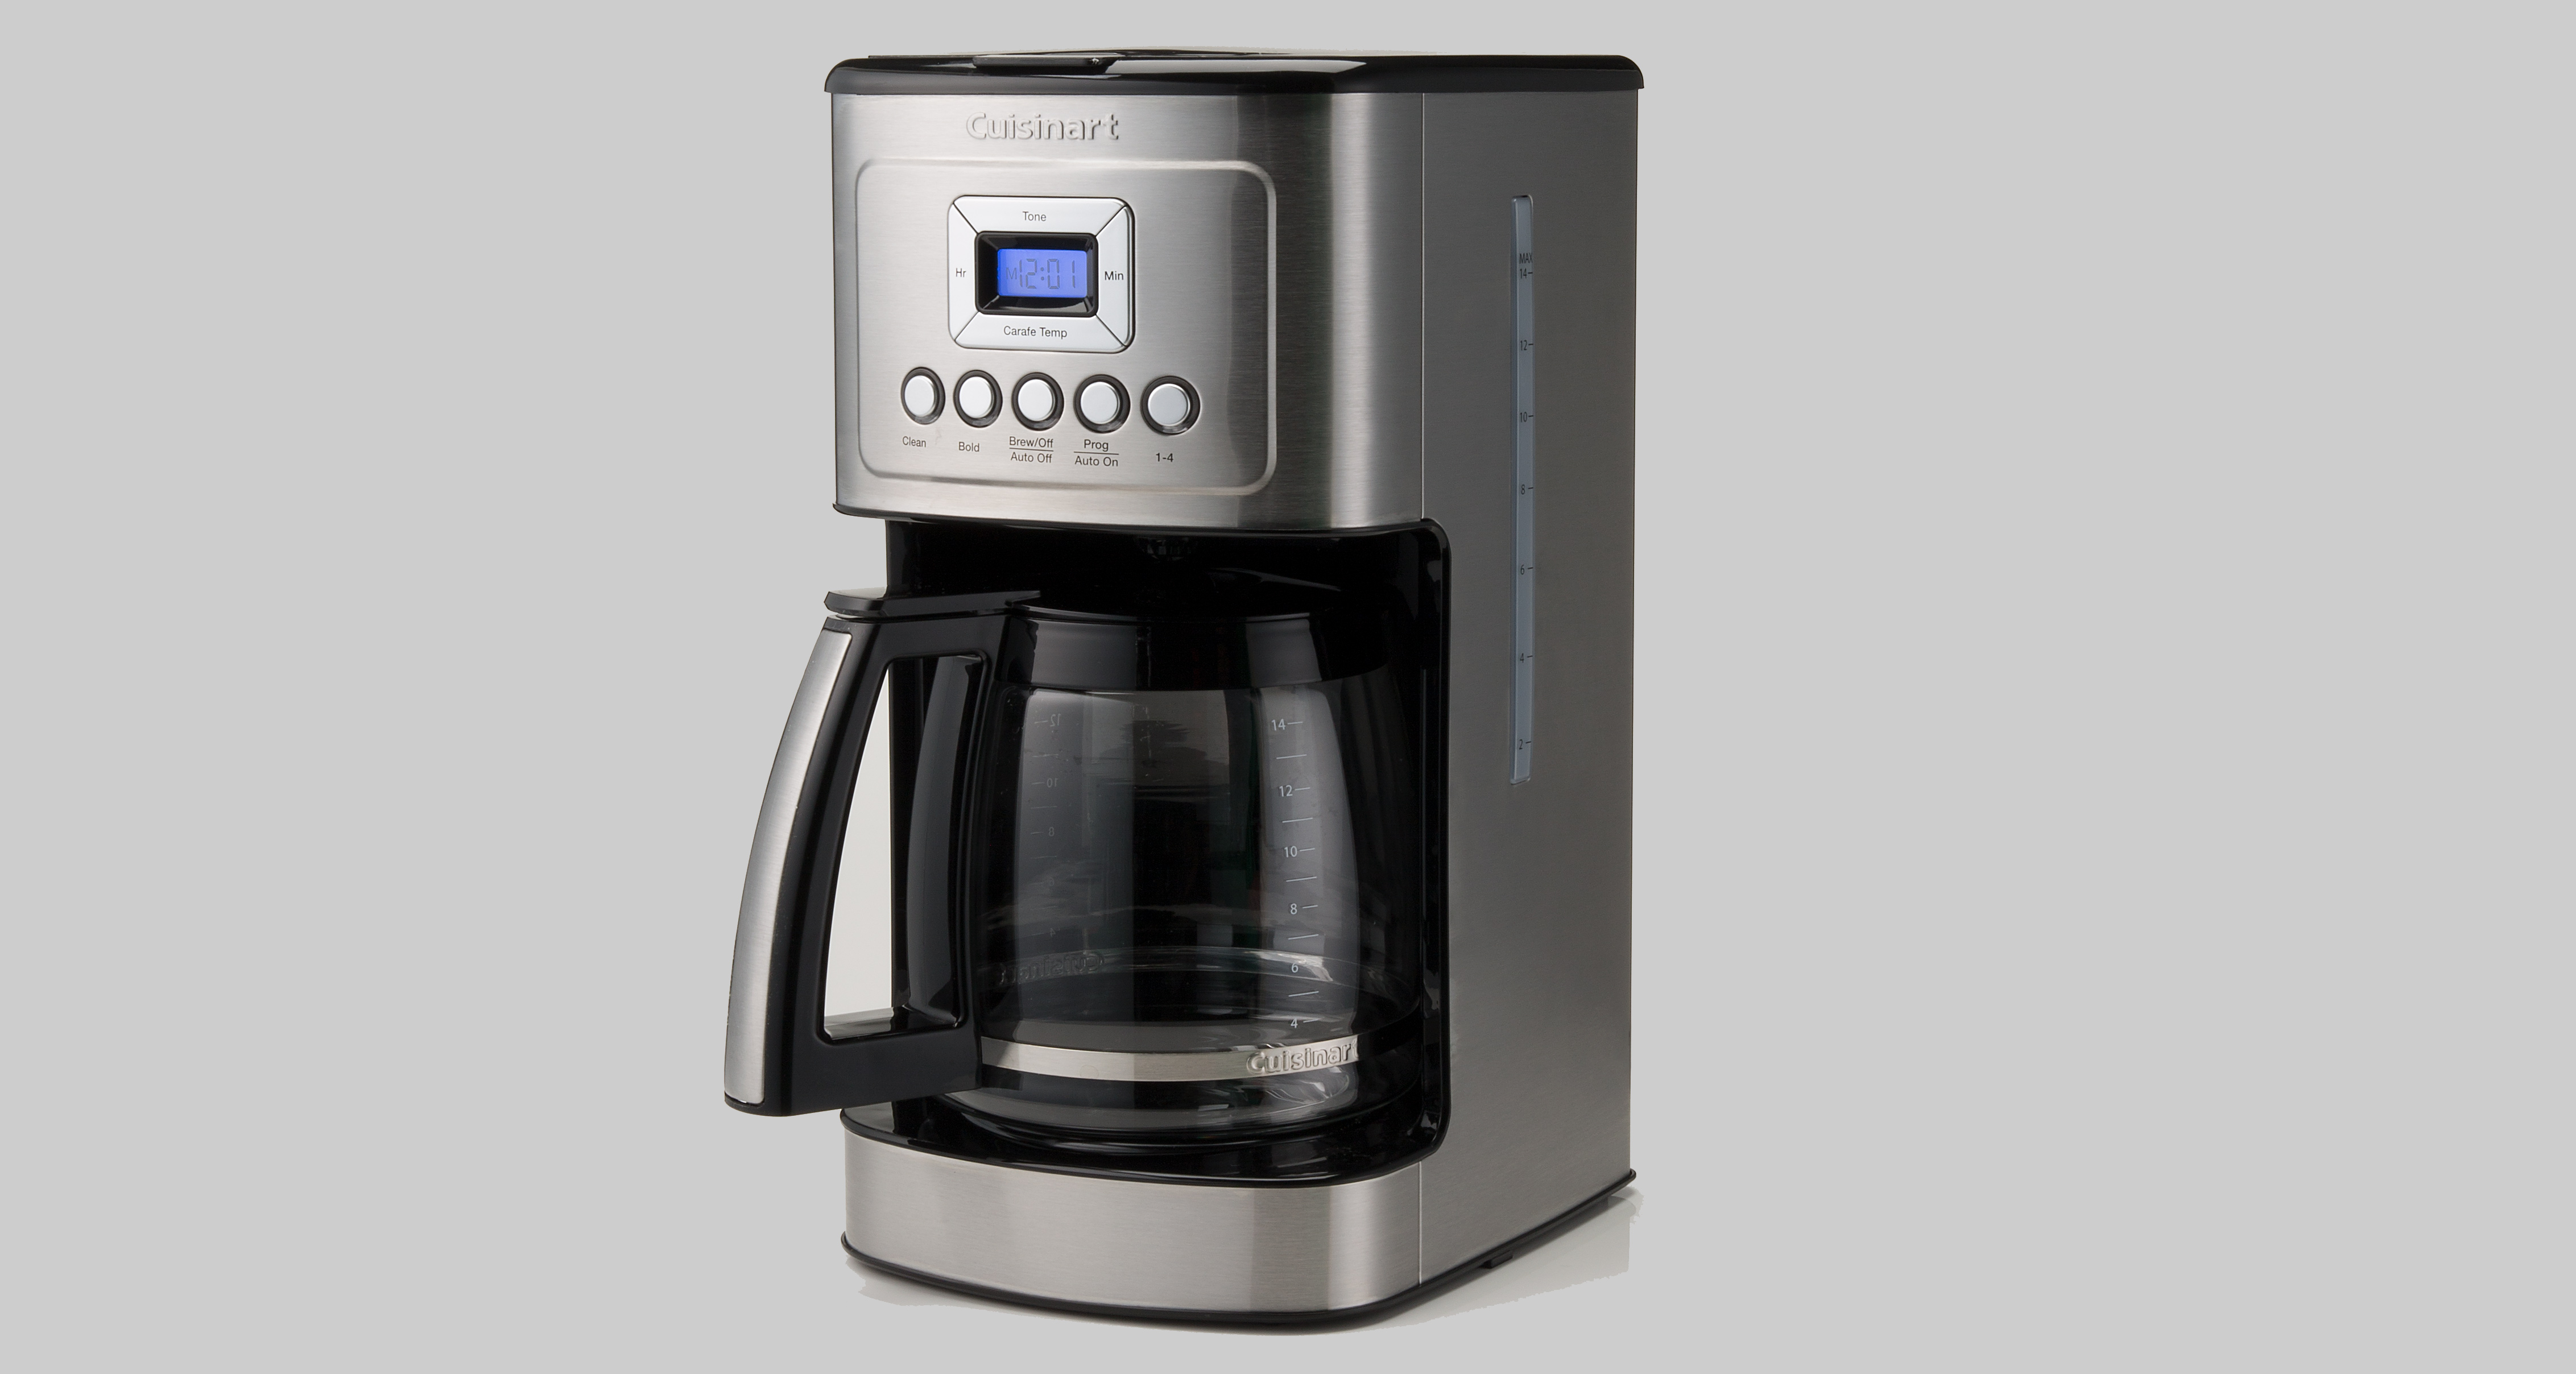 Coffee Maker Reviews Consumer Reports : Cuisinart Coffee Maker Is the New Champ - Consumer Reports